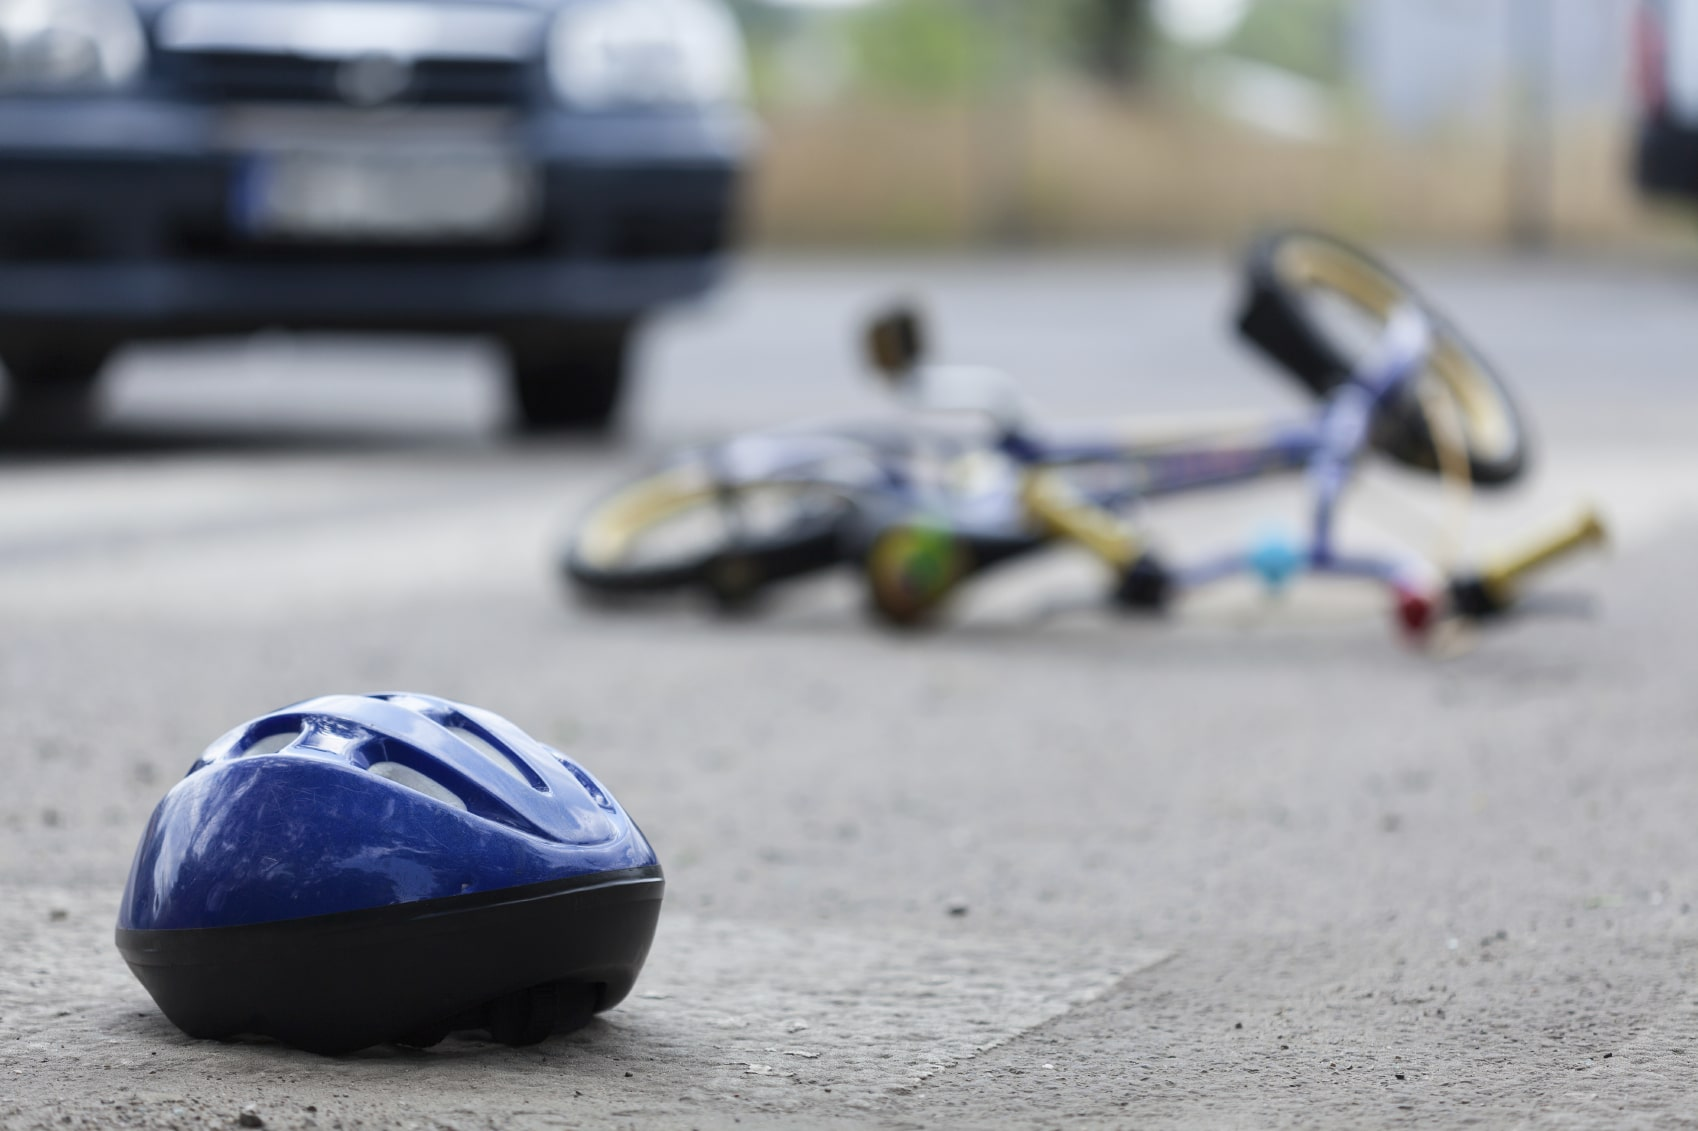 Hit and Run Bicycle Accident in Georgetown, TX Leaves One Dead